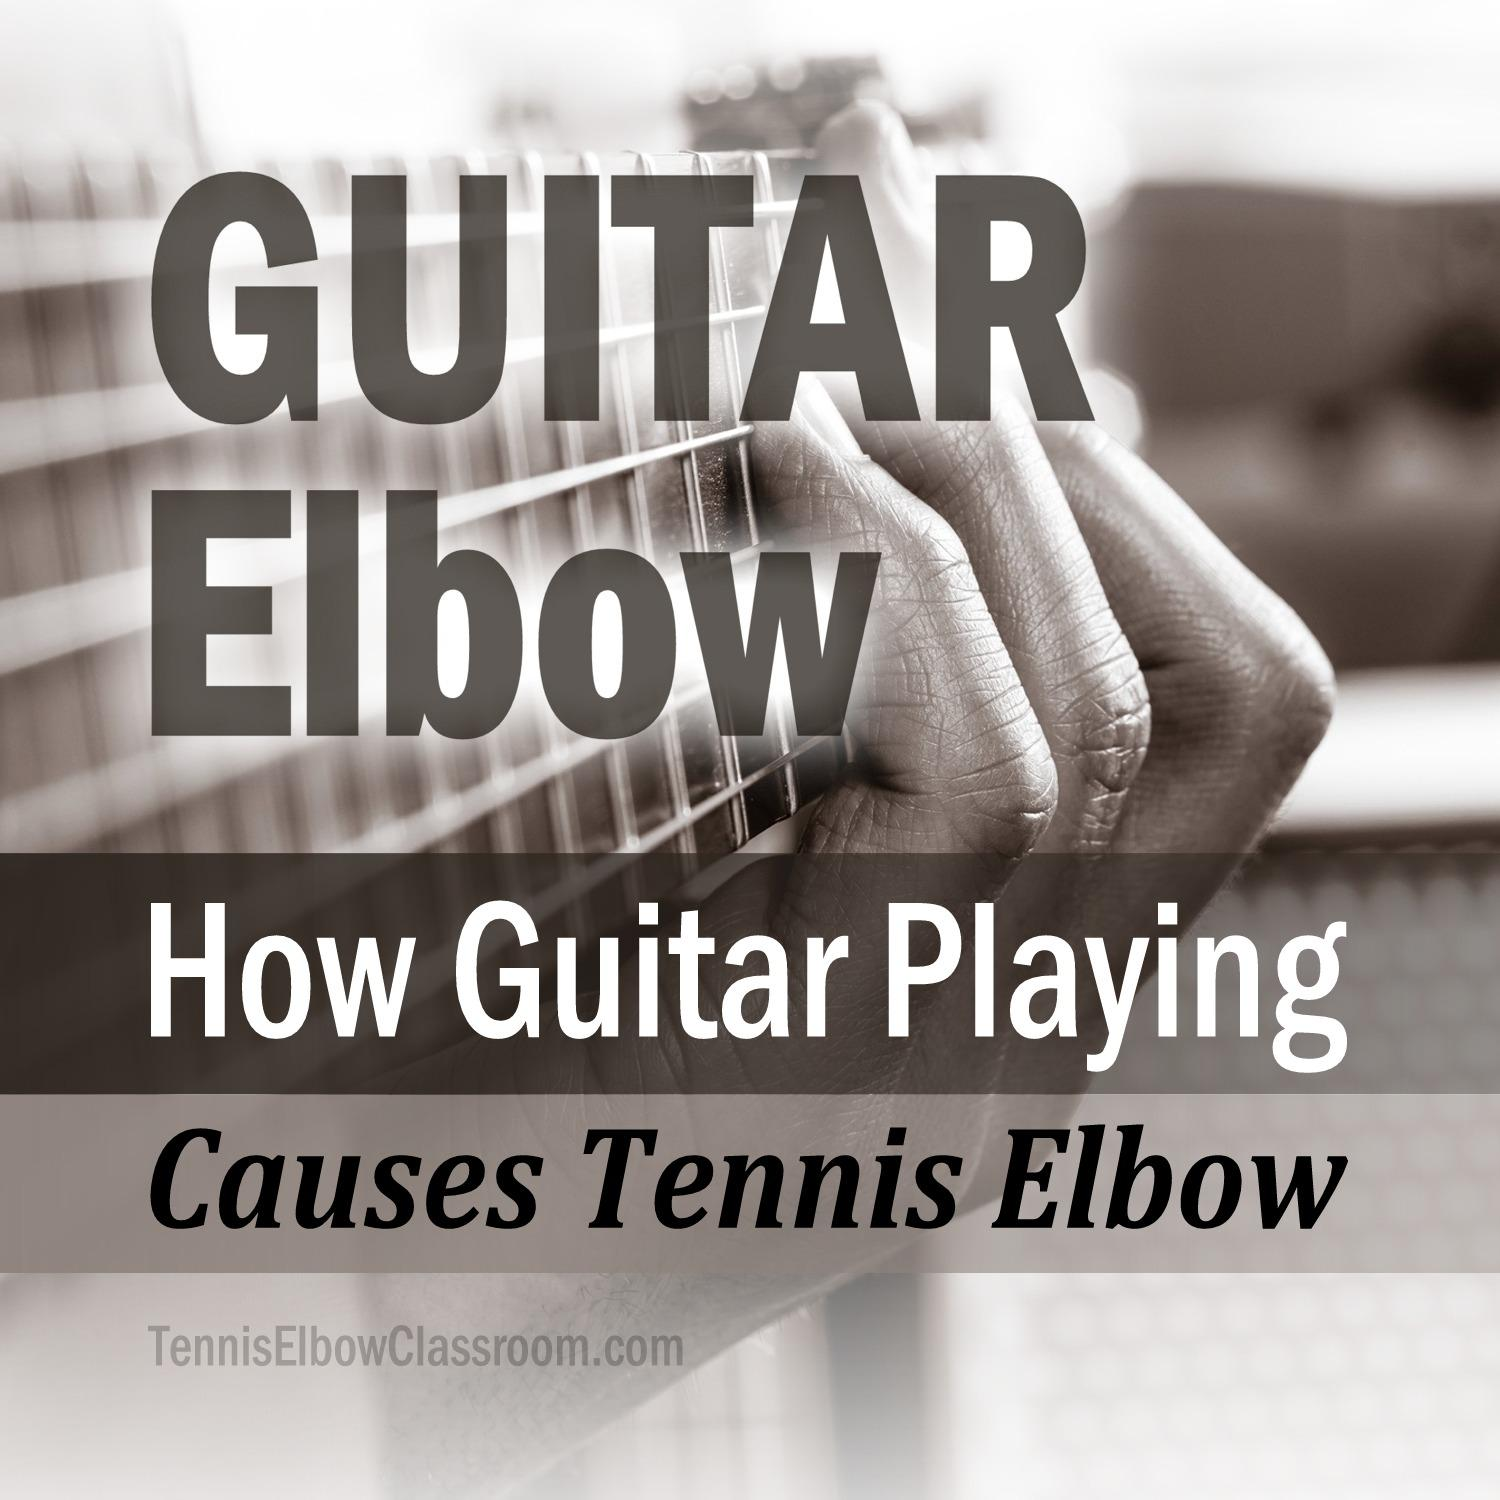 Guitar Elbow Podcast Episode Artwork